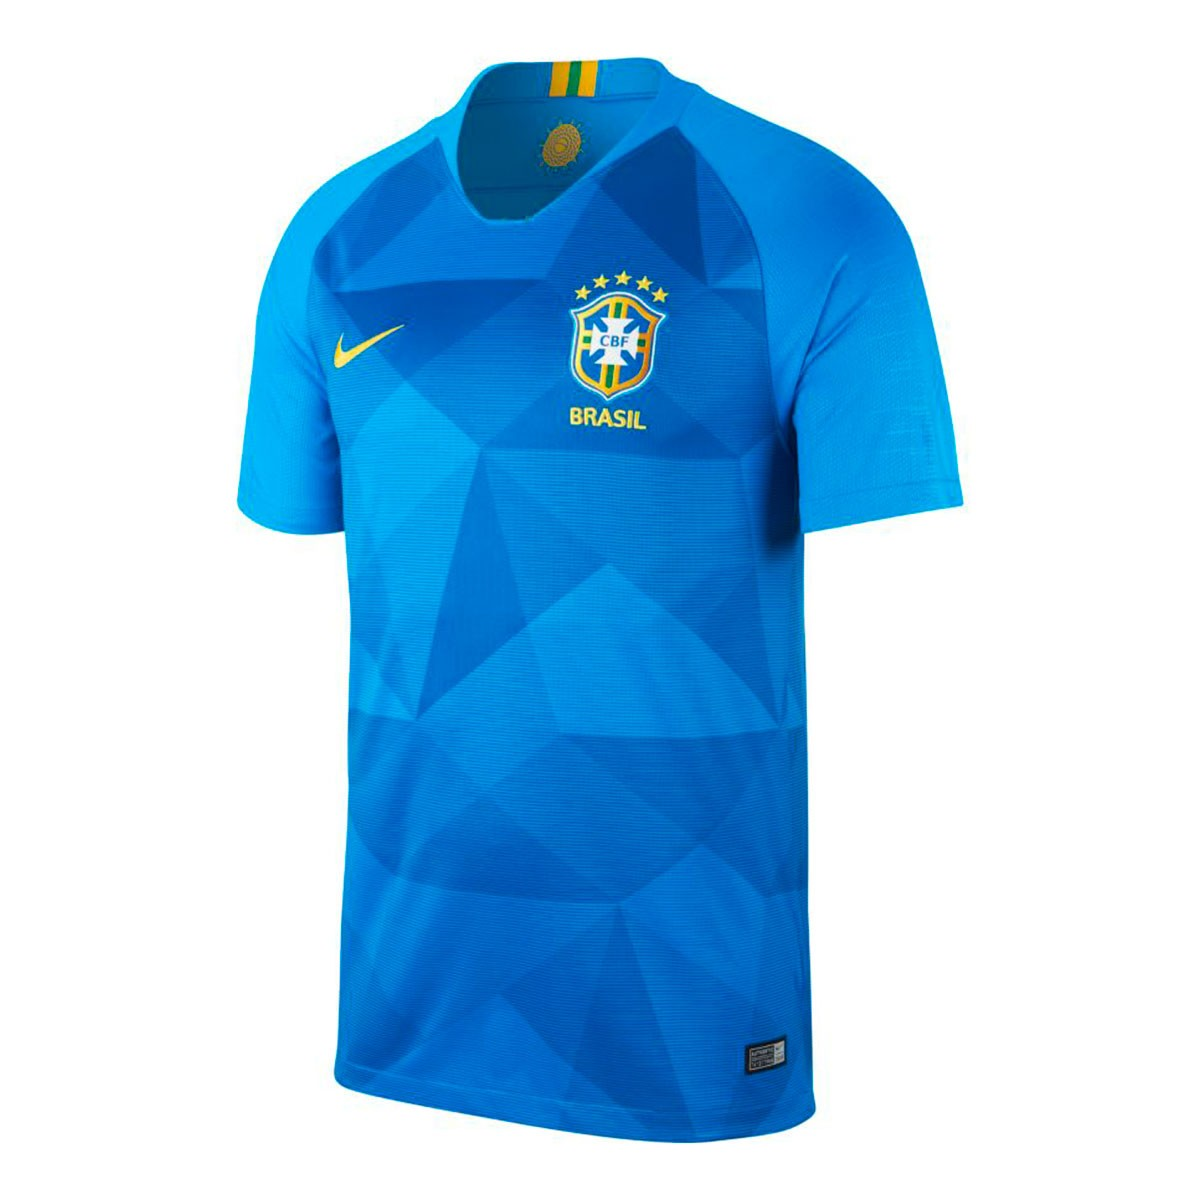 Jersey Nike Brazil Breathe Stadium 2018-2019 Away Soar-Midwest gold ... ce31d49096561